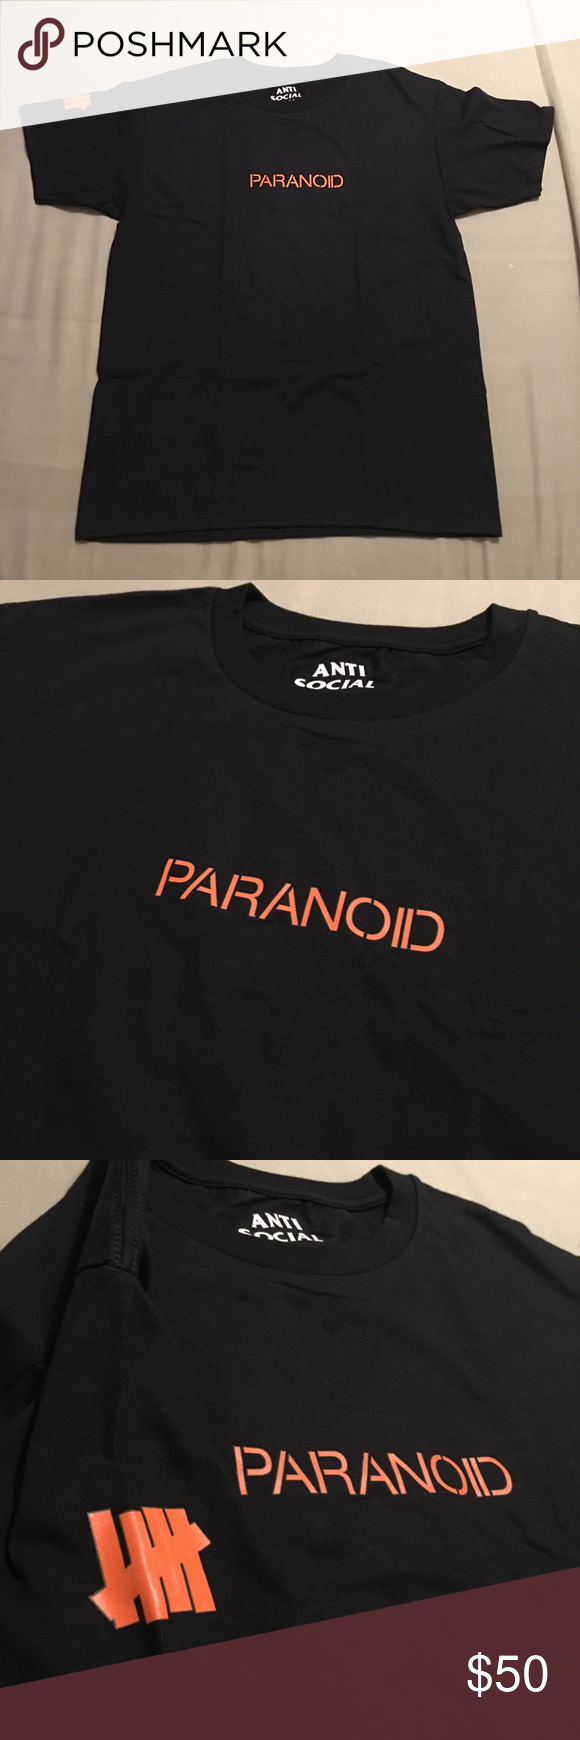 a9c60233 Anti Social Social Club Paranoid Tee ASSC x Undefeated Paranoid T-shirt in  Black Brand new and 100% authentic Ready to ship the same day Anti Social  Social ...